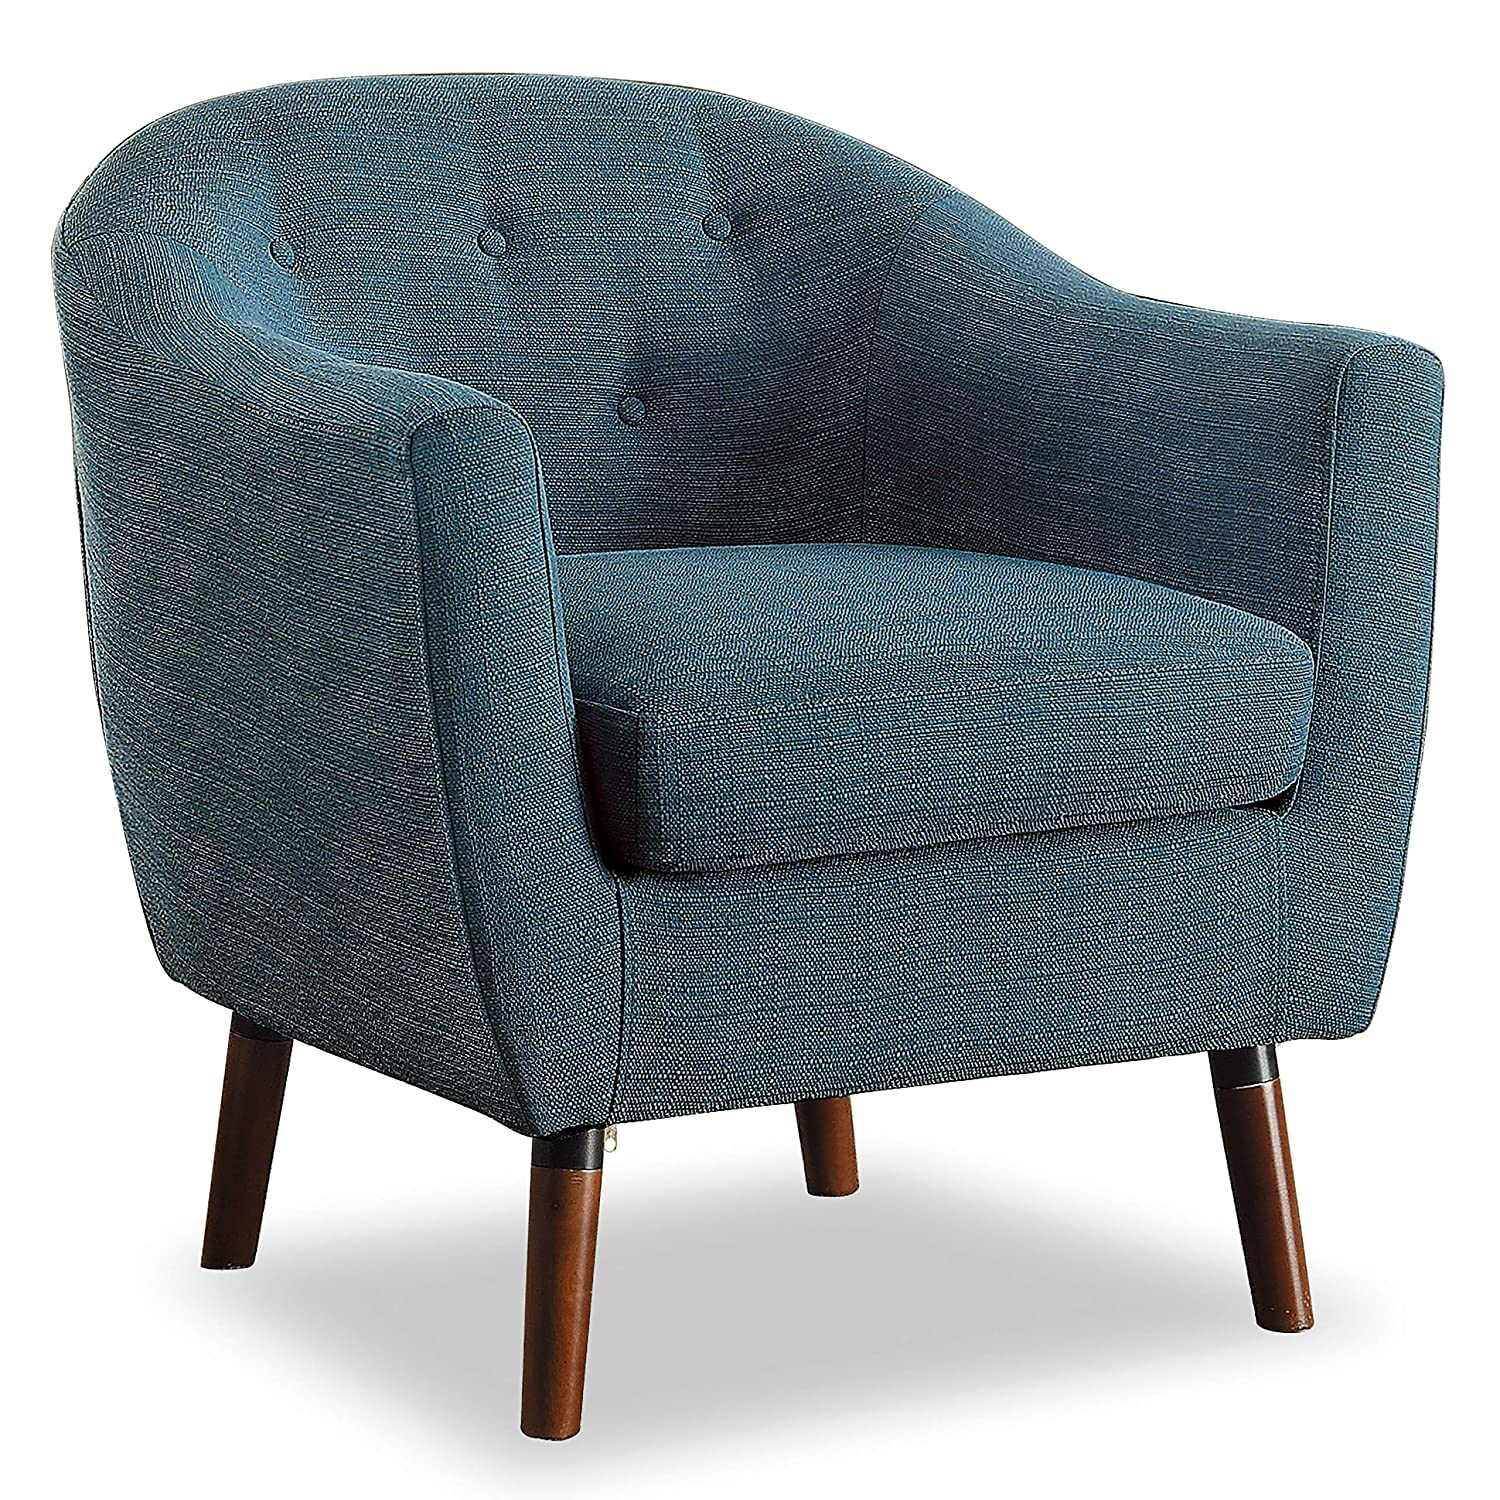 Homelegance Lucille Comfortable Chairs for Small Spaces